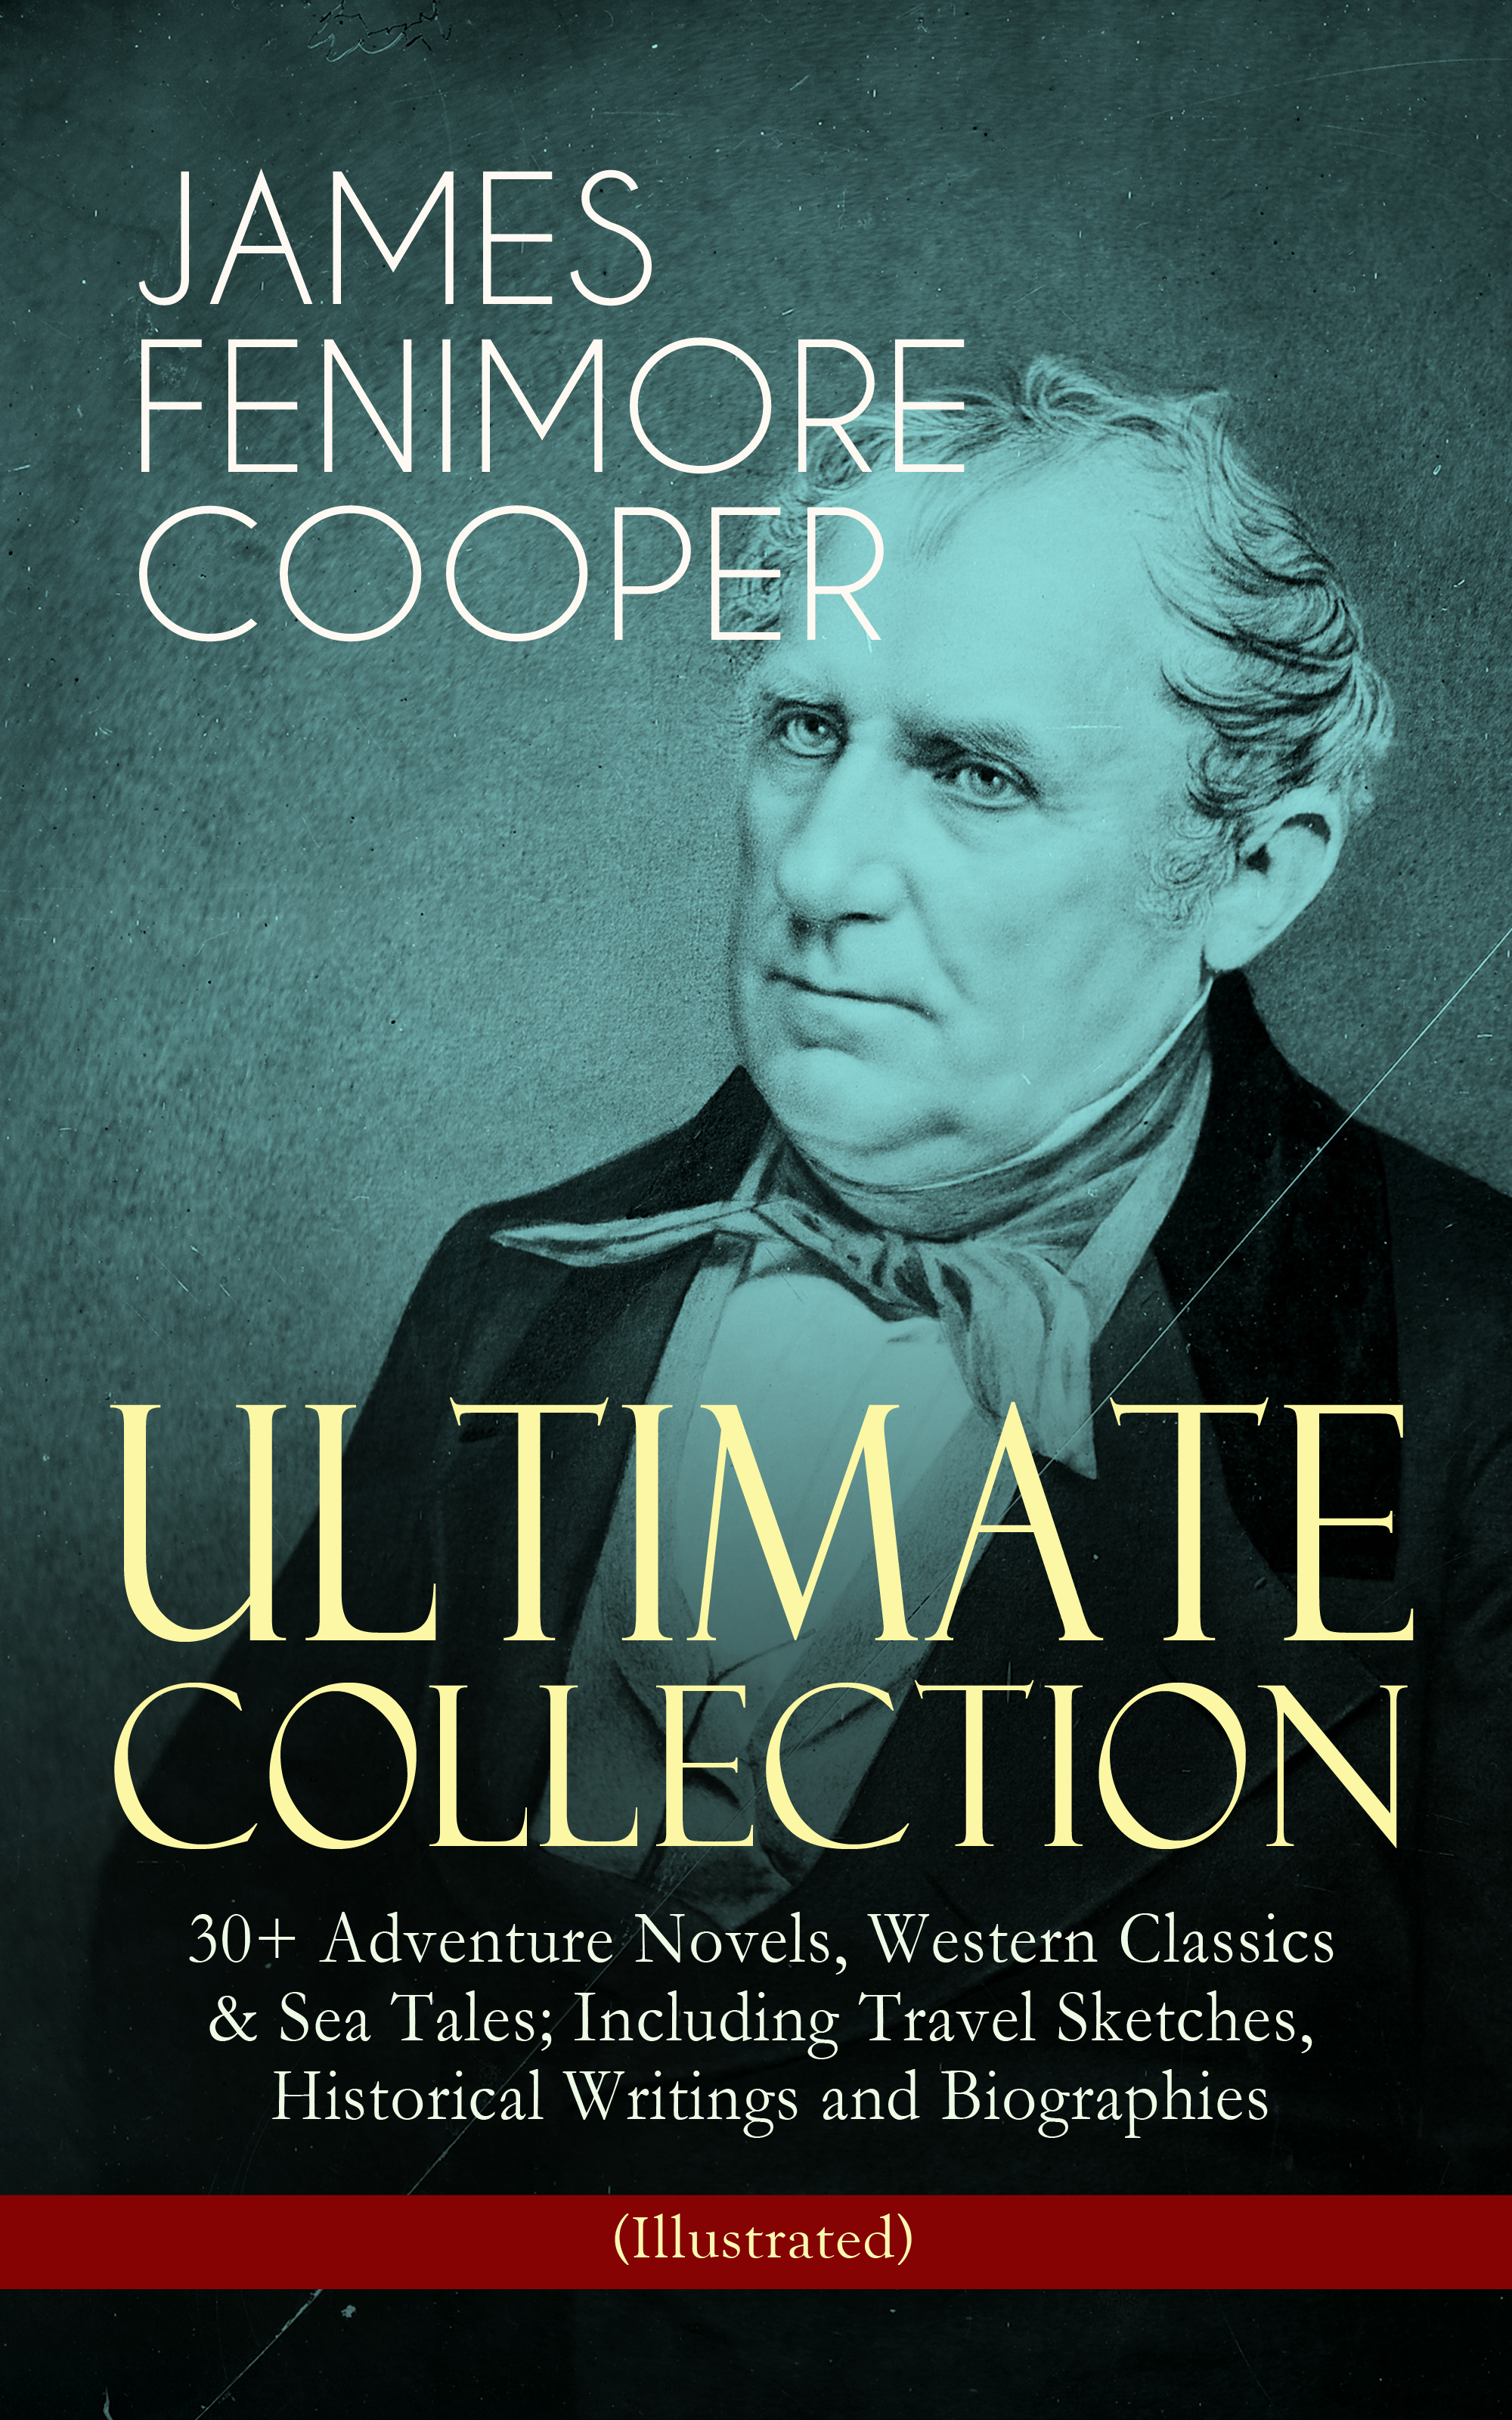 Джеймс Фенимор Купер JAMES FENIMORE COOPER – Ultimate Collection: 30+ Adventure Novels, Western Classics & Sea Tales; Including Travel Sketches, Historical Writings and Biographies (Illustrated) cooper james fenimore the spy